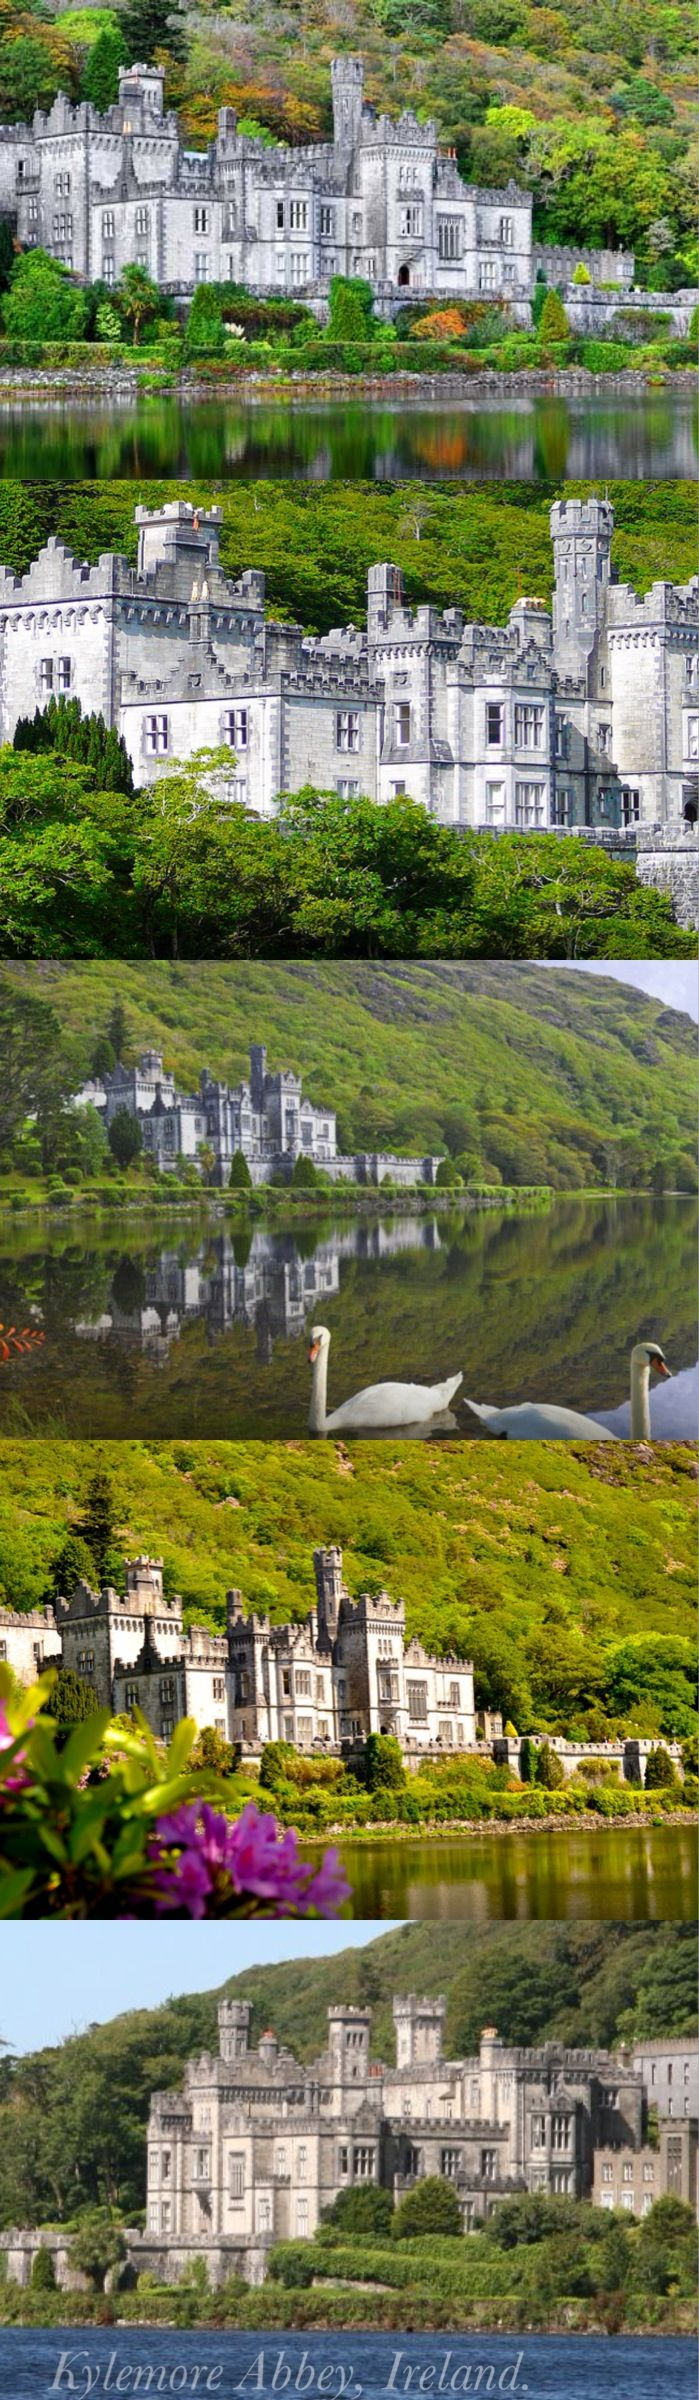 Kylemore Abbey is a Benedictine monastery founded in 1920 on the grounds of Kylemore Castle, in Connemara, County Galway, Ireland. The abbey was founded for Benedictine Nuns who fled Belgium in World War I. The current Mother Abbess of the Benedictine Community is Mary Margaret Funk.Kylemore Castle was built as a private home for the family of Mitchell Henry, a wealthy doctor from London, whose family was in textile manufacturing from Manchester, England.